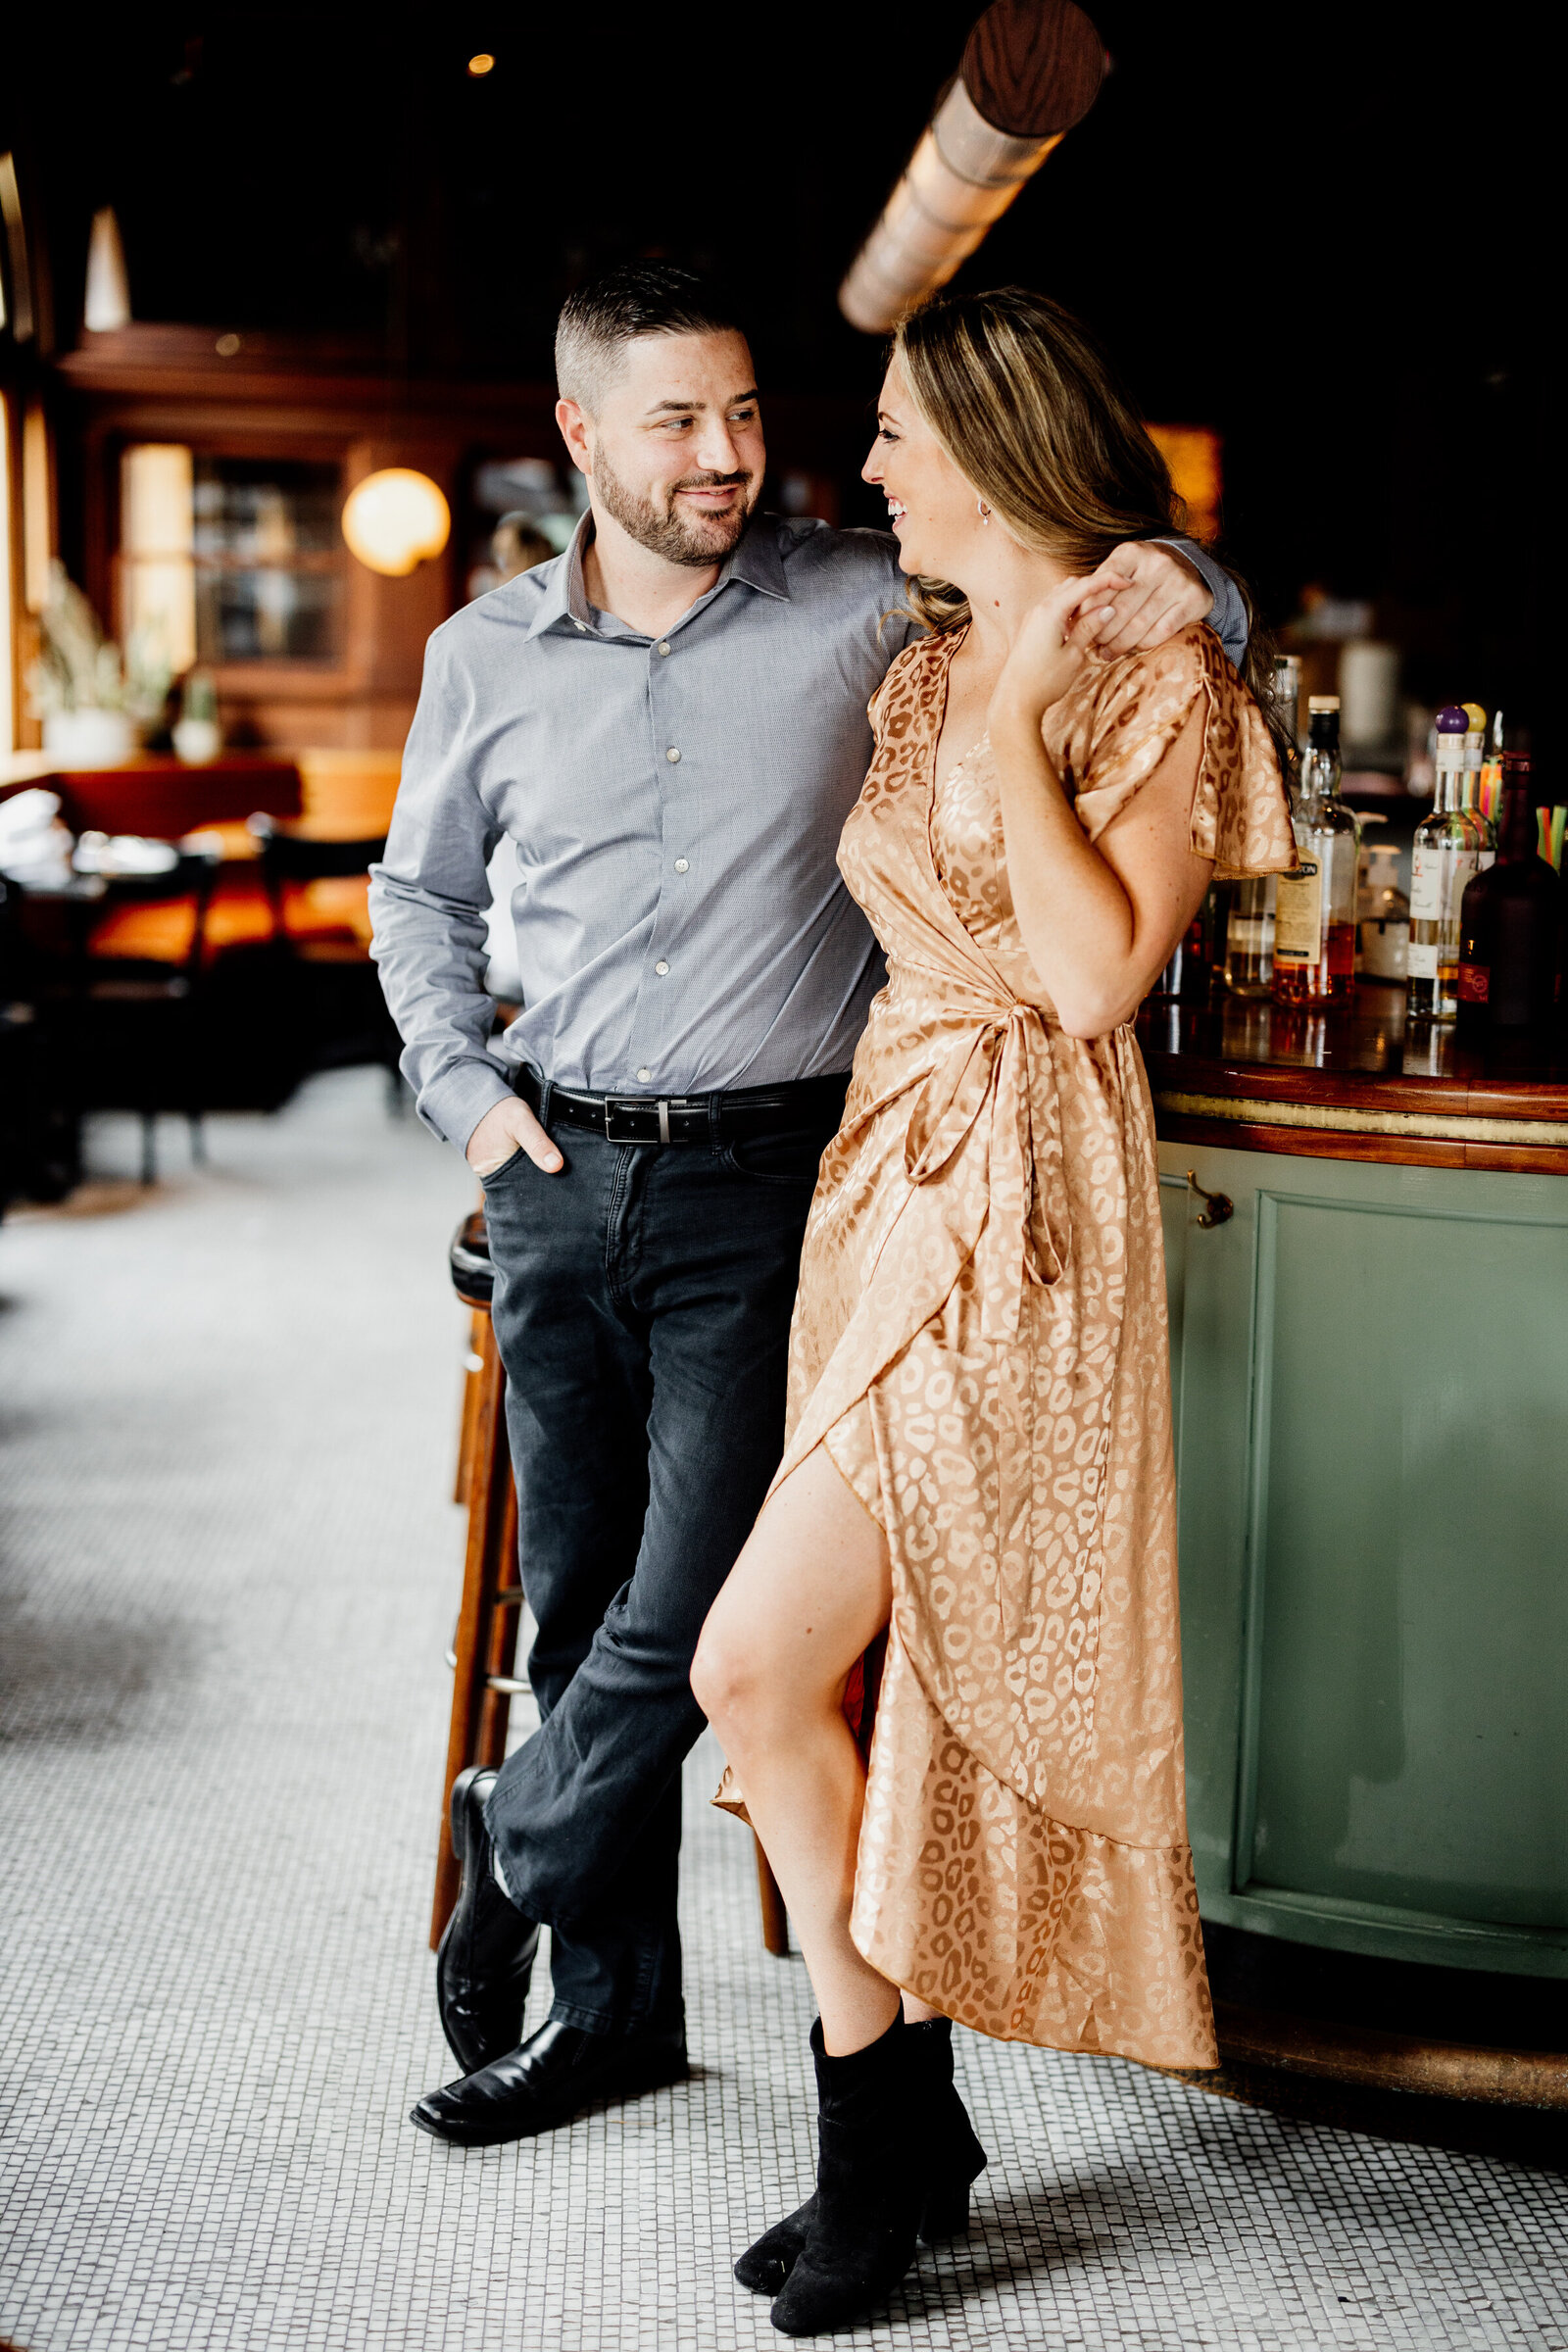 couple in city wine bar